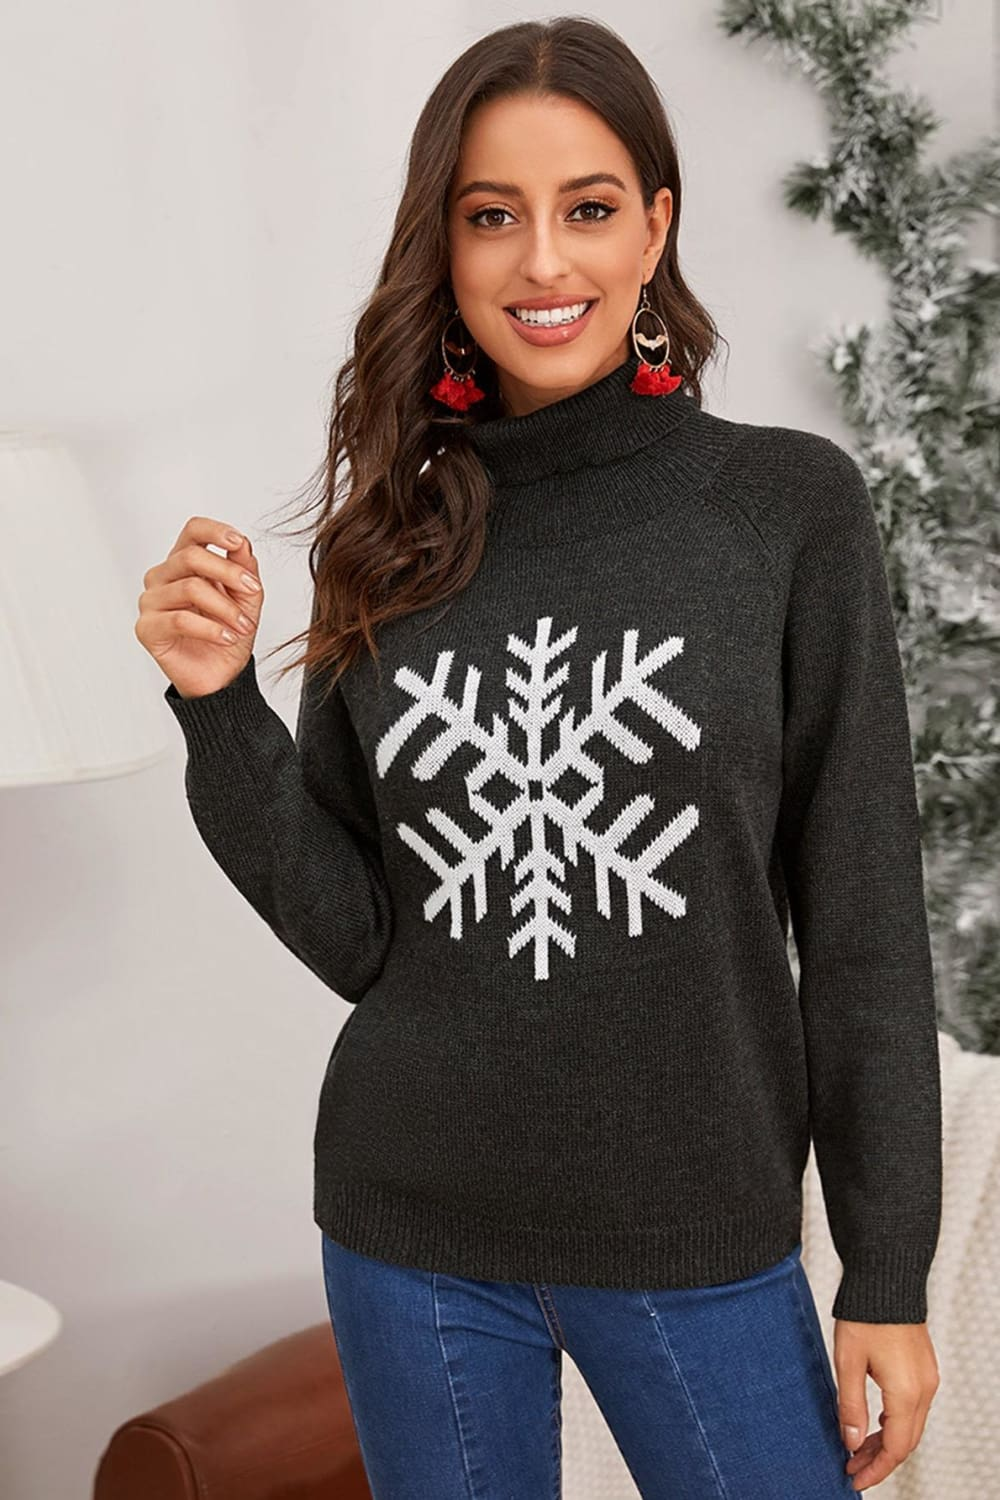 A Very Chic Christmas Grey Snowflake Turtleneck Sweater - Sweaters - Evan & Jane